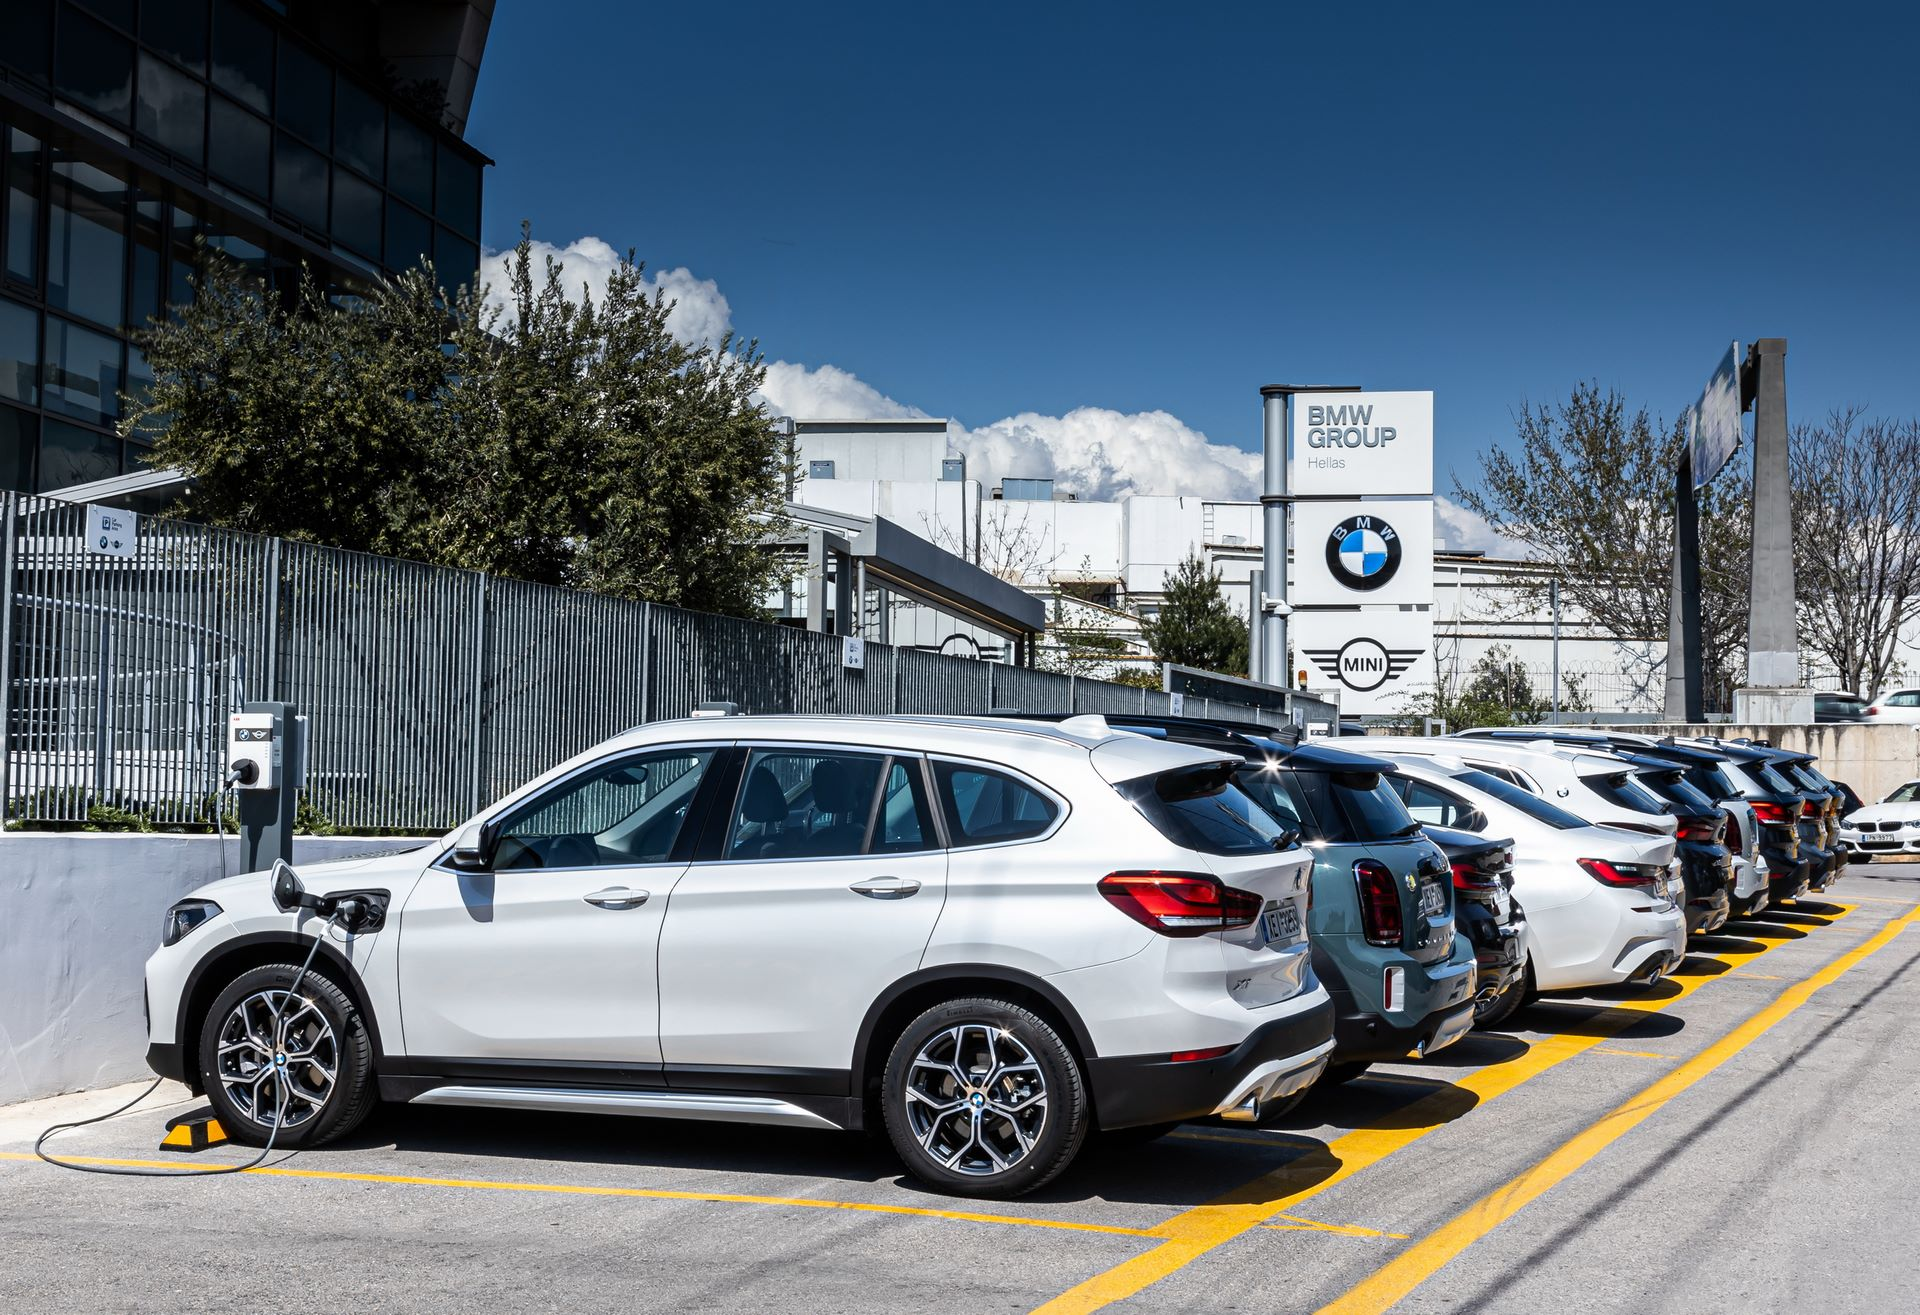 BMW-Group-Hellas-EV-Electric-Chargers-Charging-9